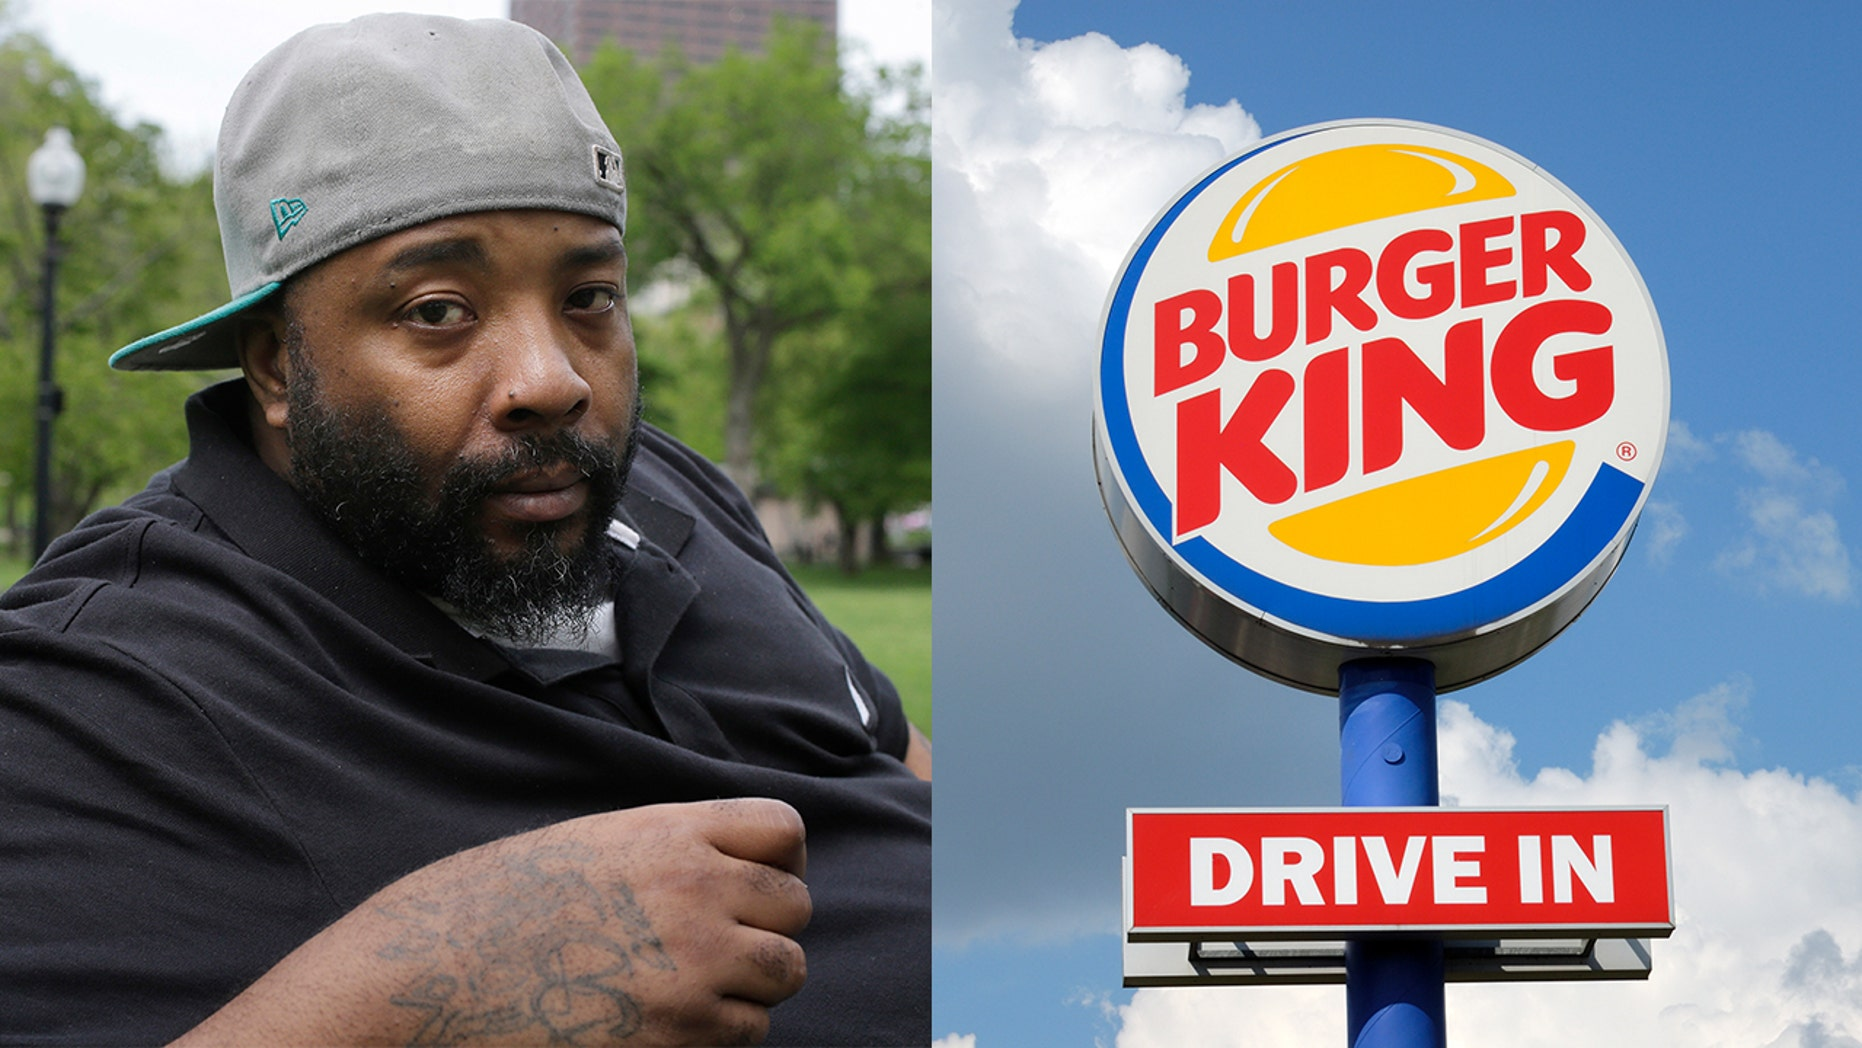 Ellis Emory is suing Burger King for nearly $1 million after they falsely accused him of using counterfeit money and he ended up in jail.